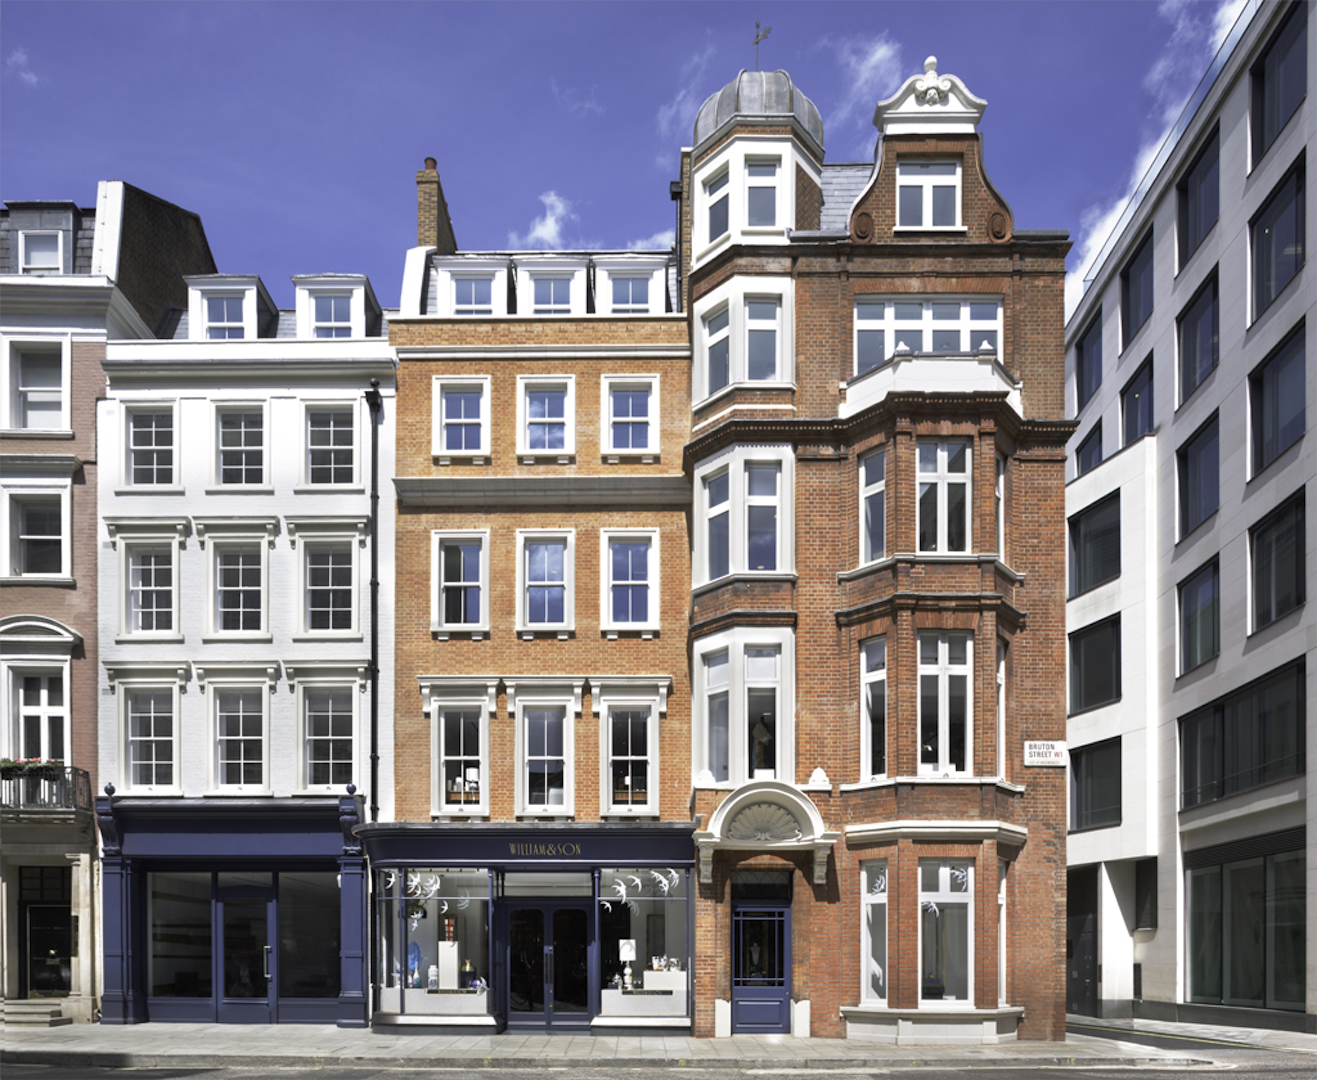 William & Son flagship store in London Mayfair